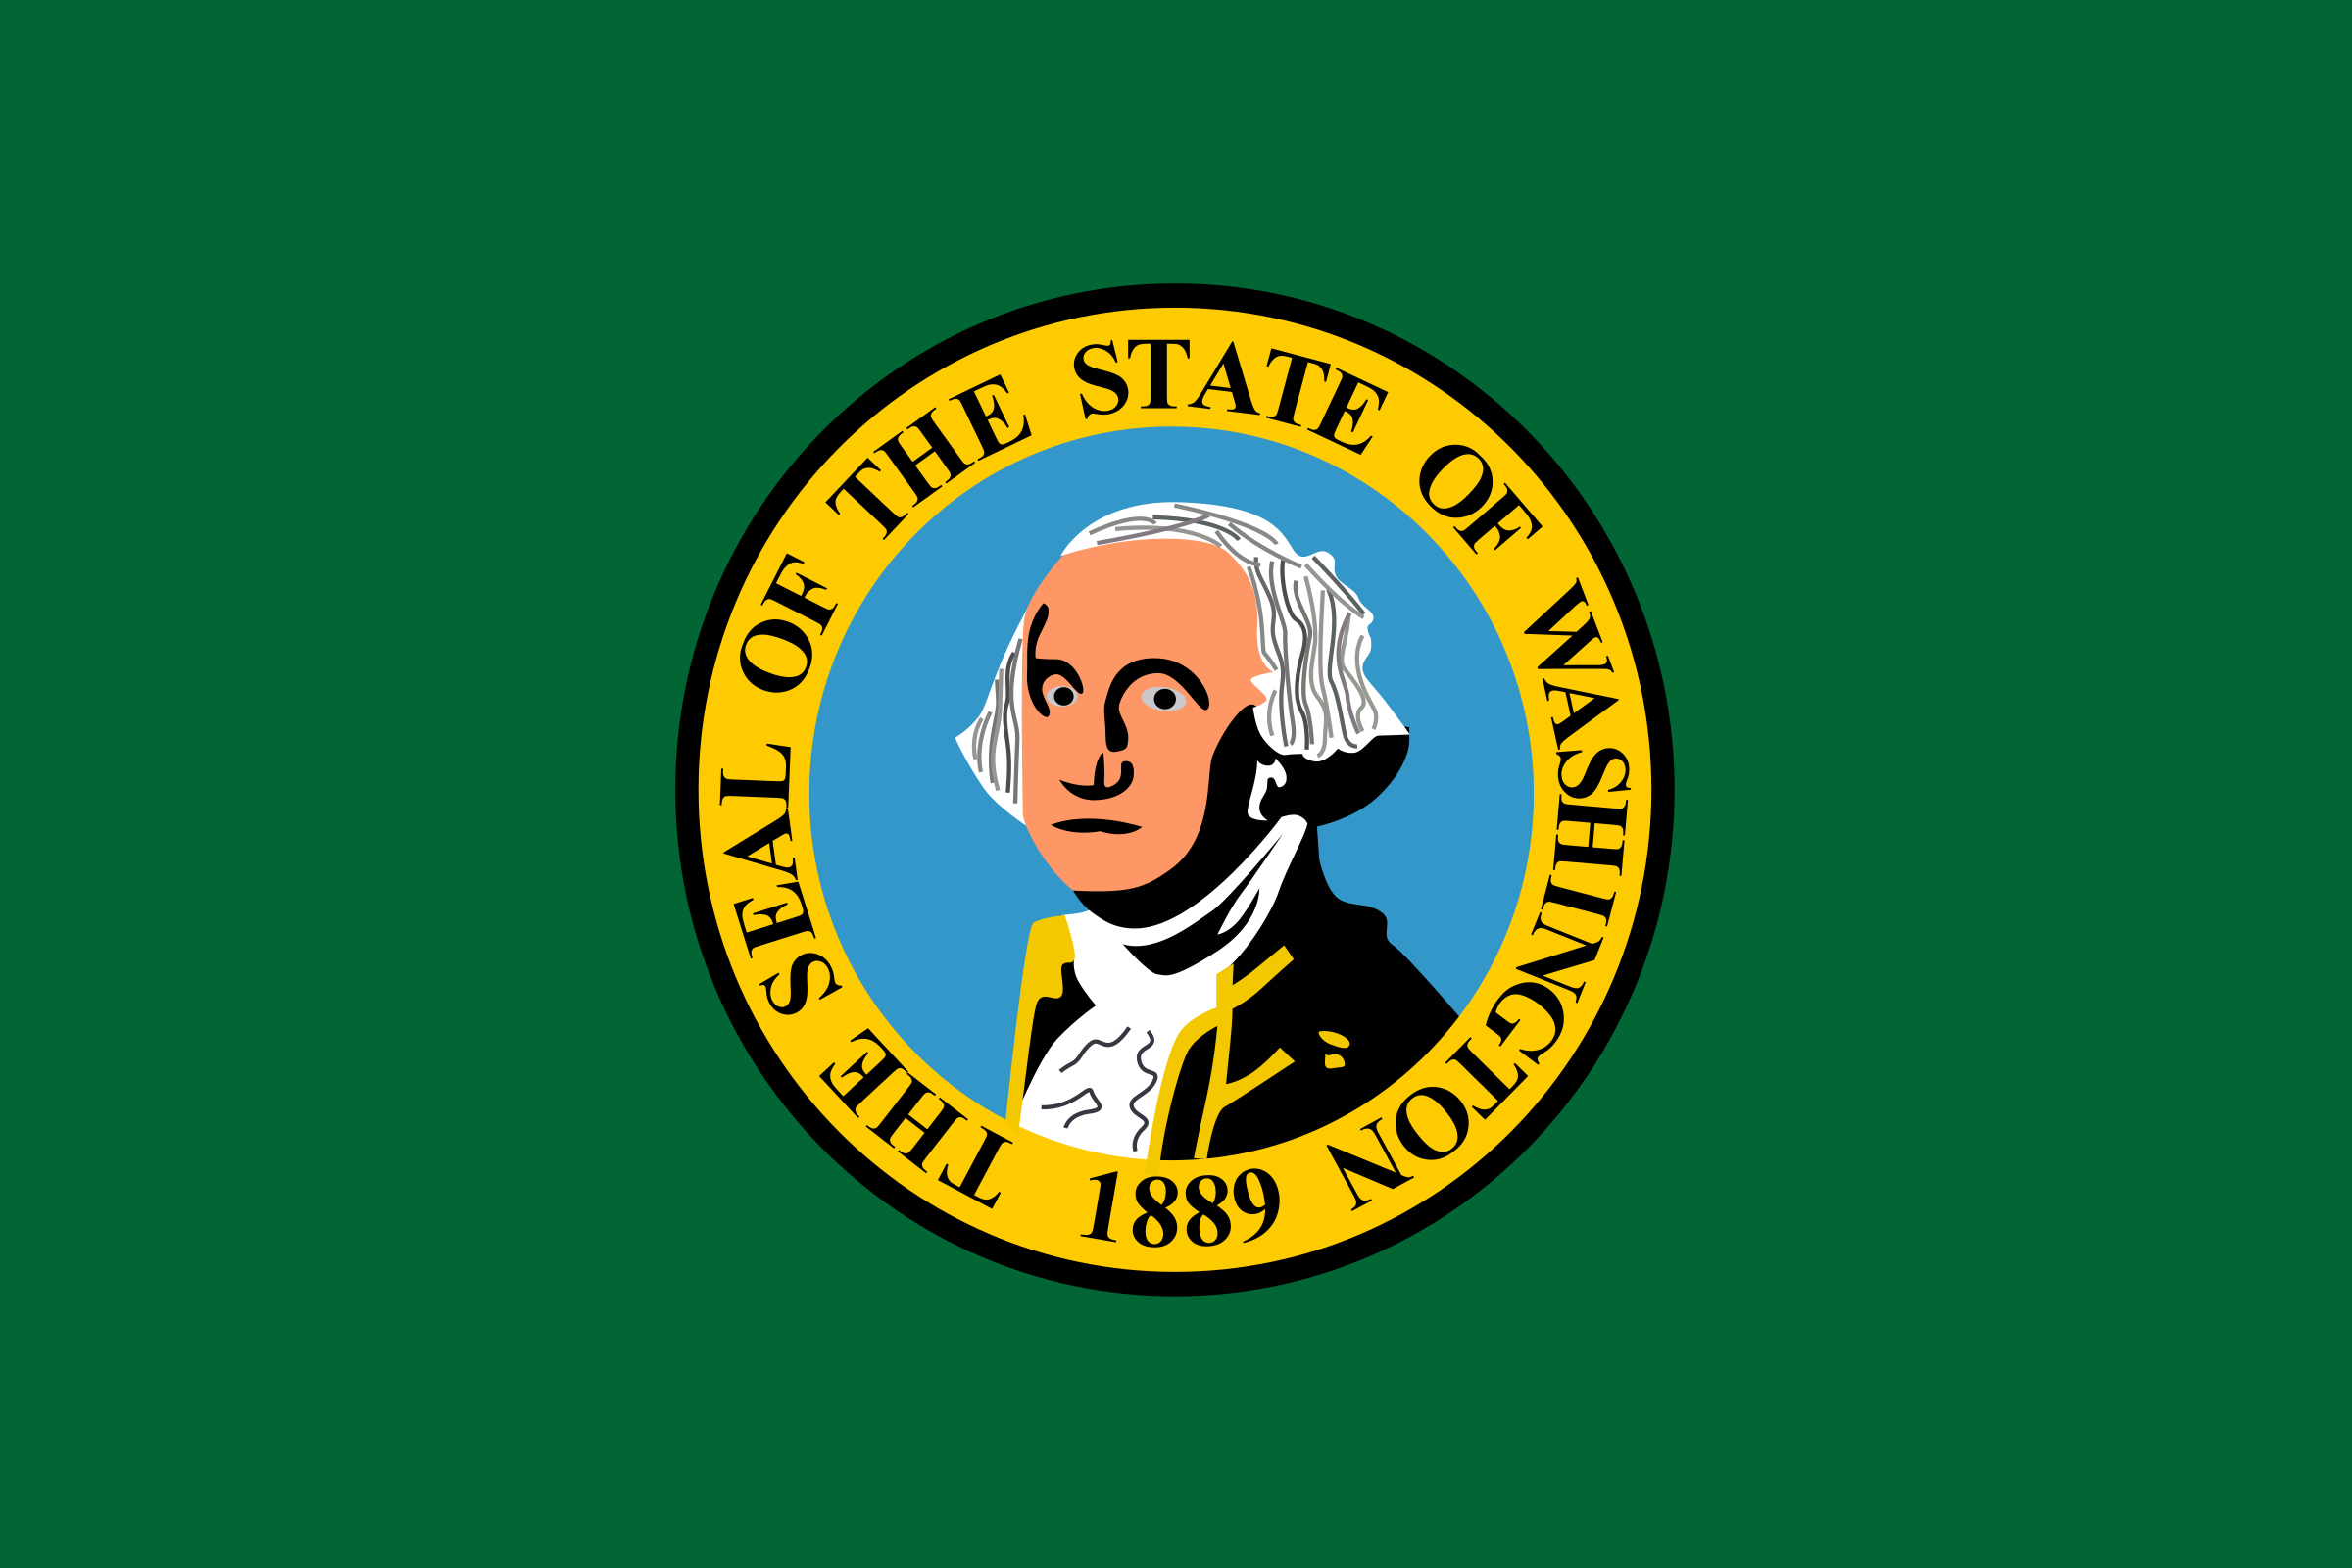 Washington state flag by Anonymous